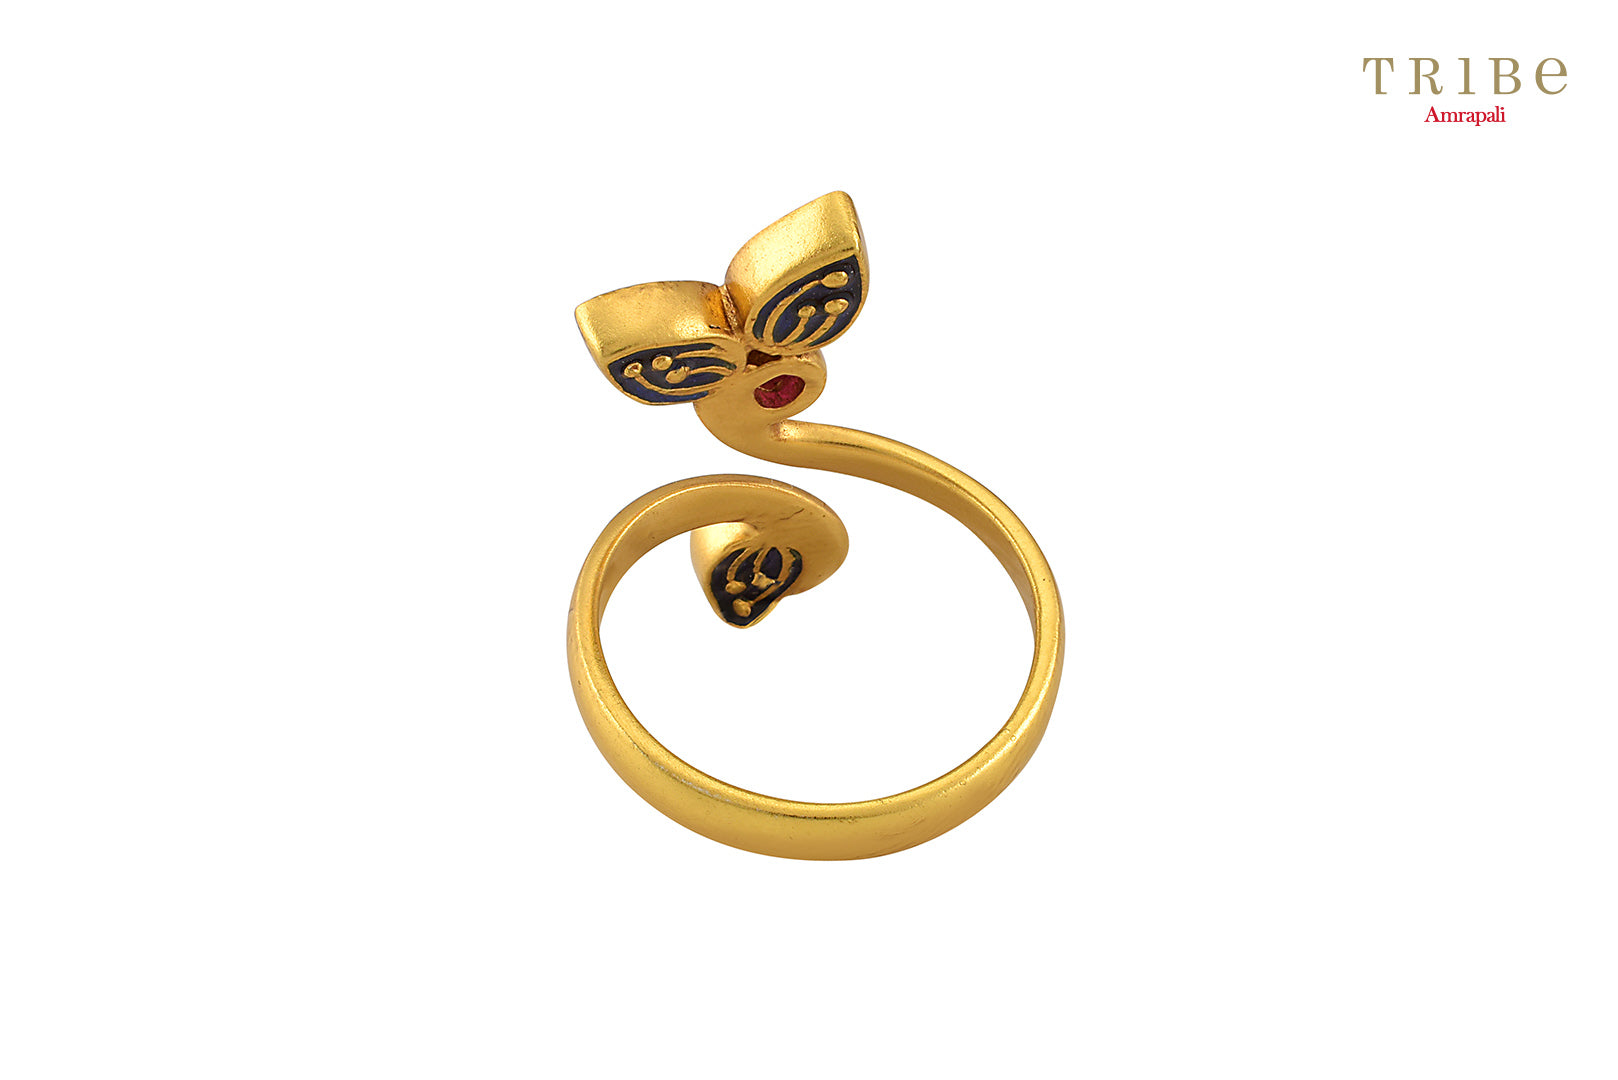 Buy delicate silver gold plated crystal leaf ring online in USA by Tribe Amrapali. The crystal ring is a unique jewelry piece for your hands. If you want to shop such ethnic Indian silver gold plated jewelry in USA, then look no further than Pure Elegance. You can shop at our exclusive fashion store or online.-front look